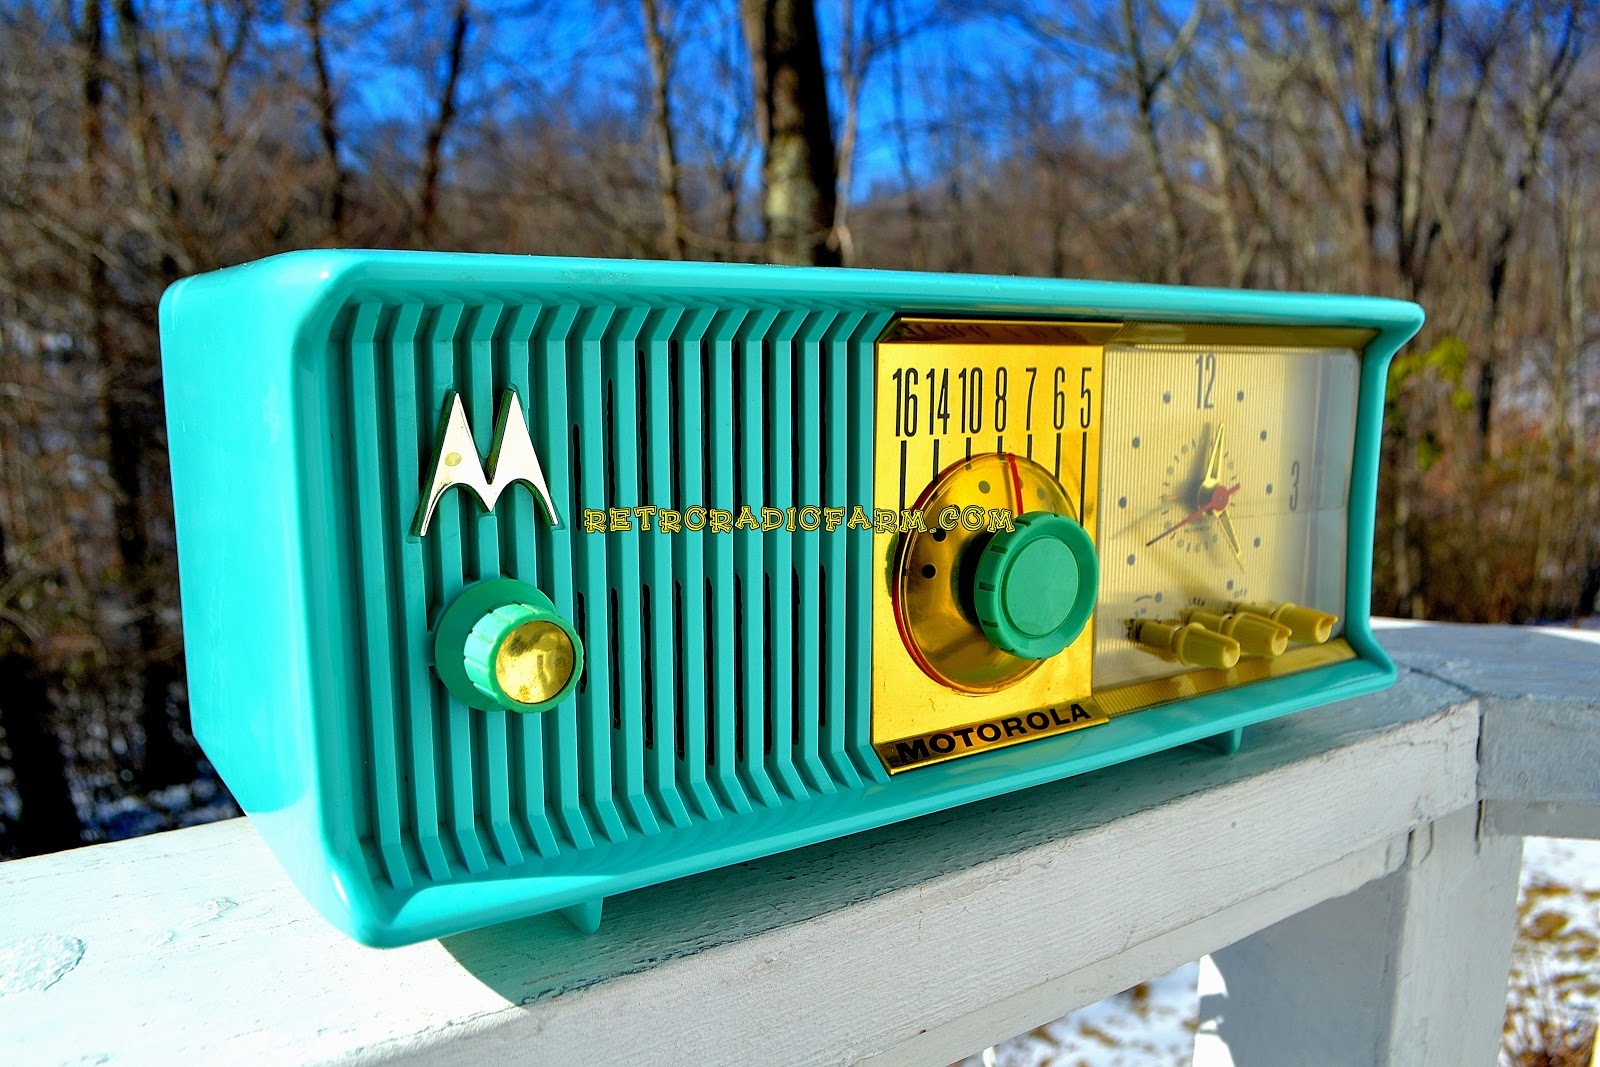 finding-and-repairing-retro-radios-turned-into-a-successful-side-hustle